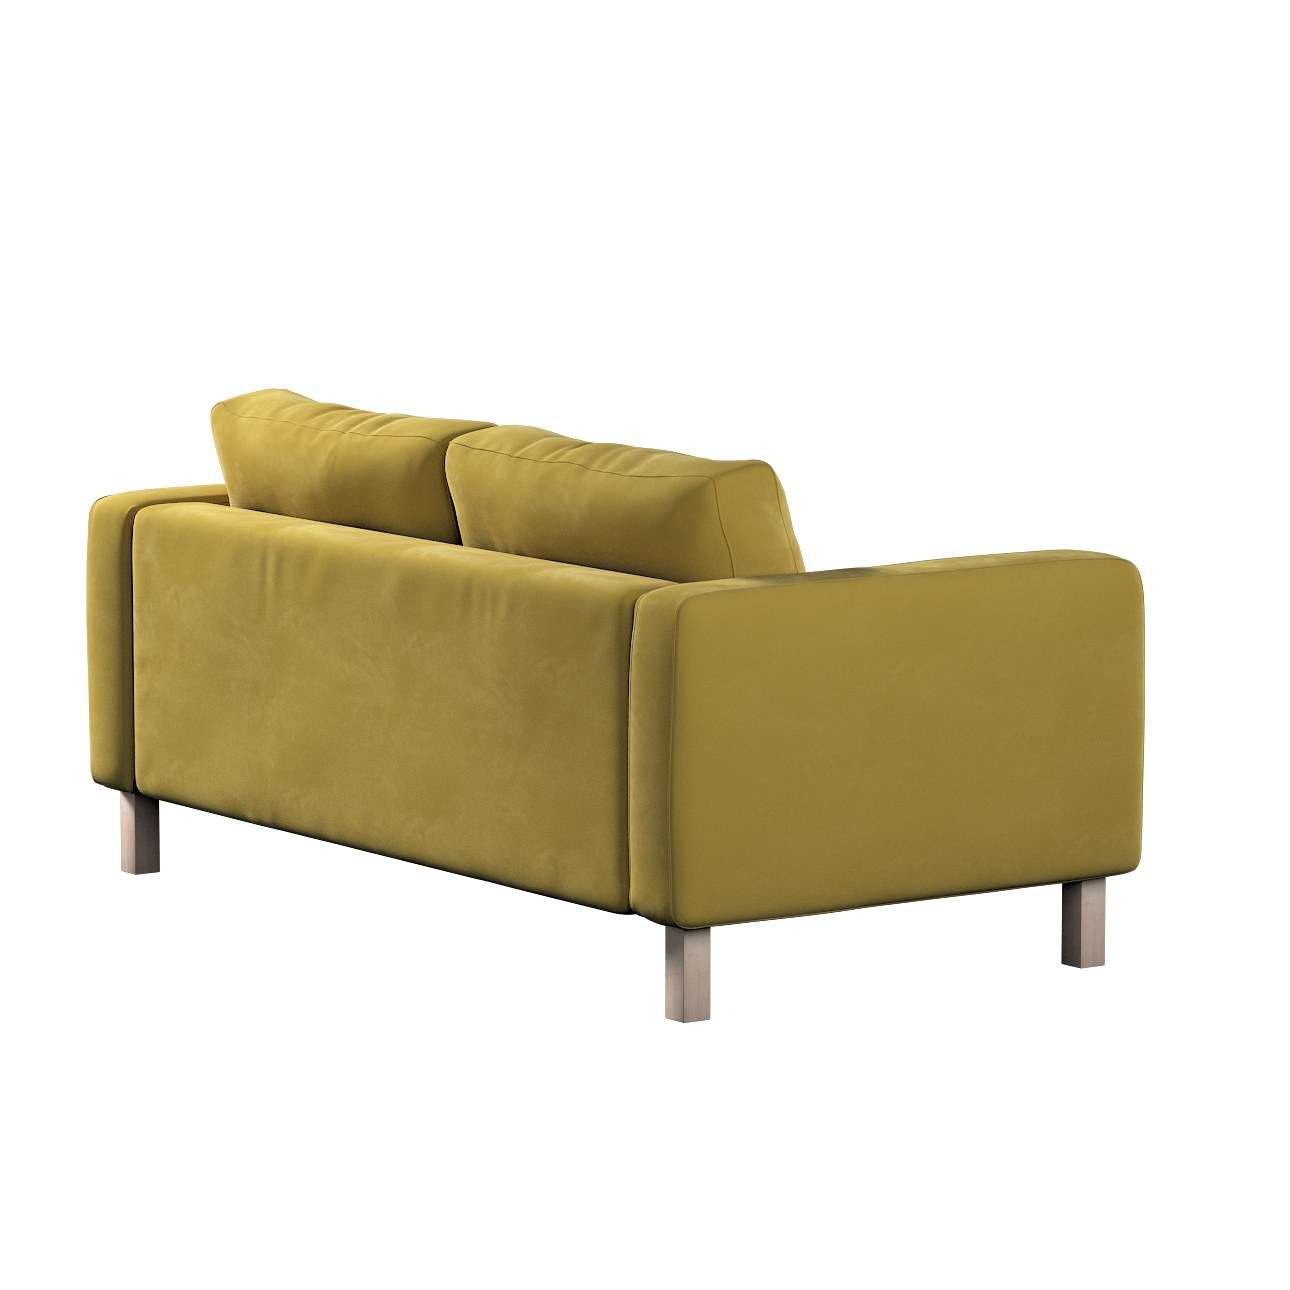 Karlstad 2-seater sofa cover in collection Velvet, fabric: 704-27